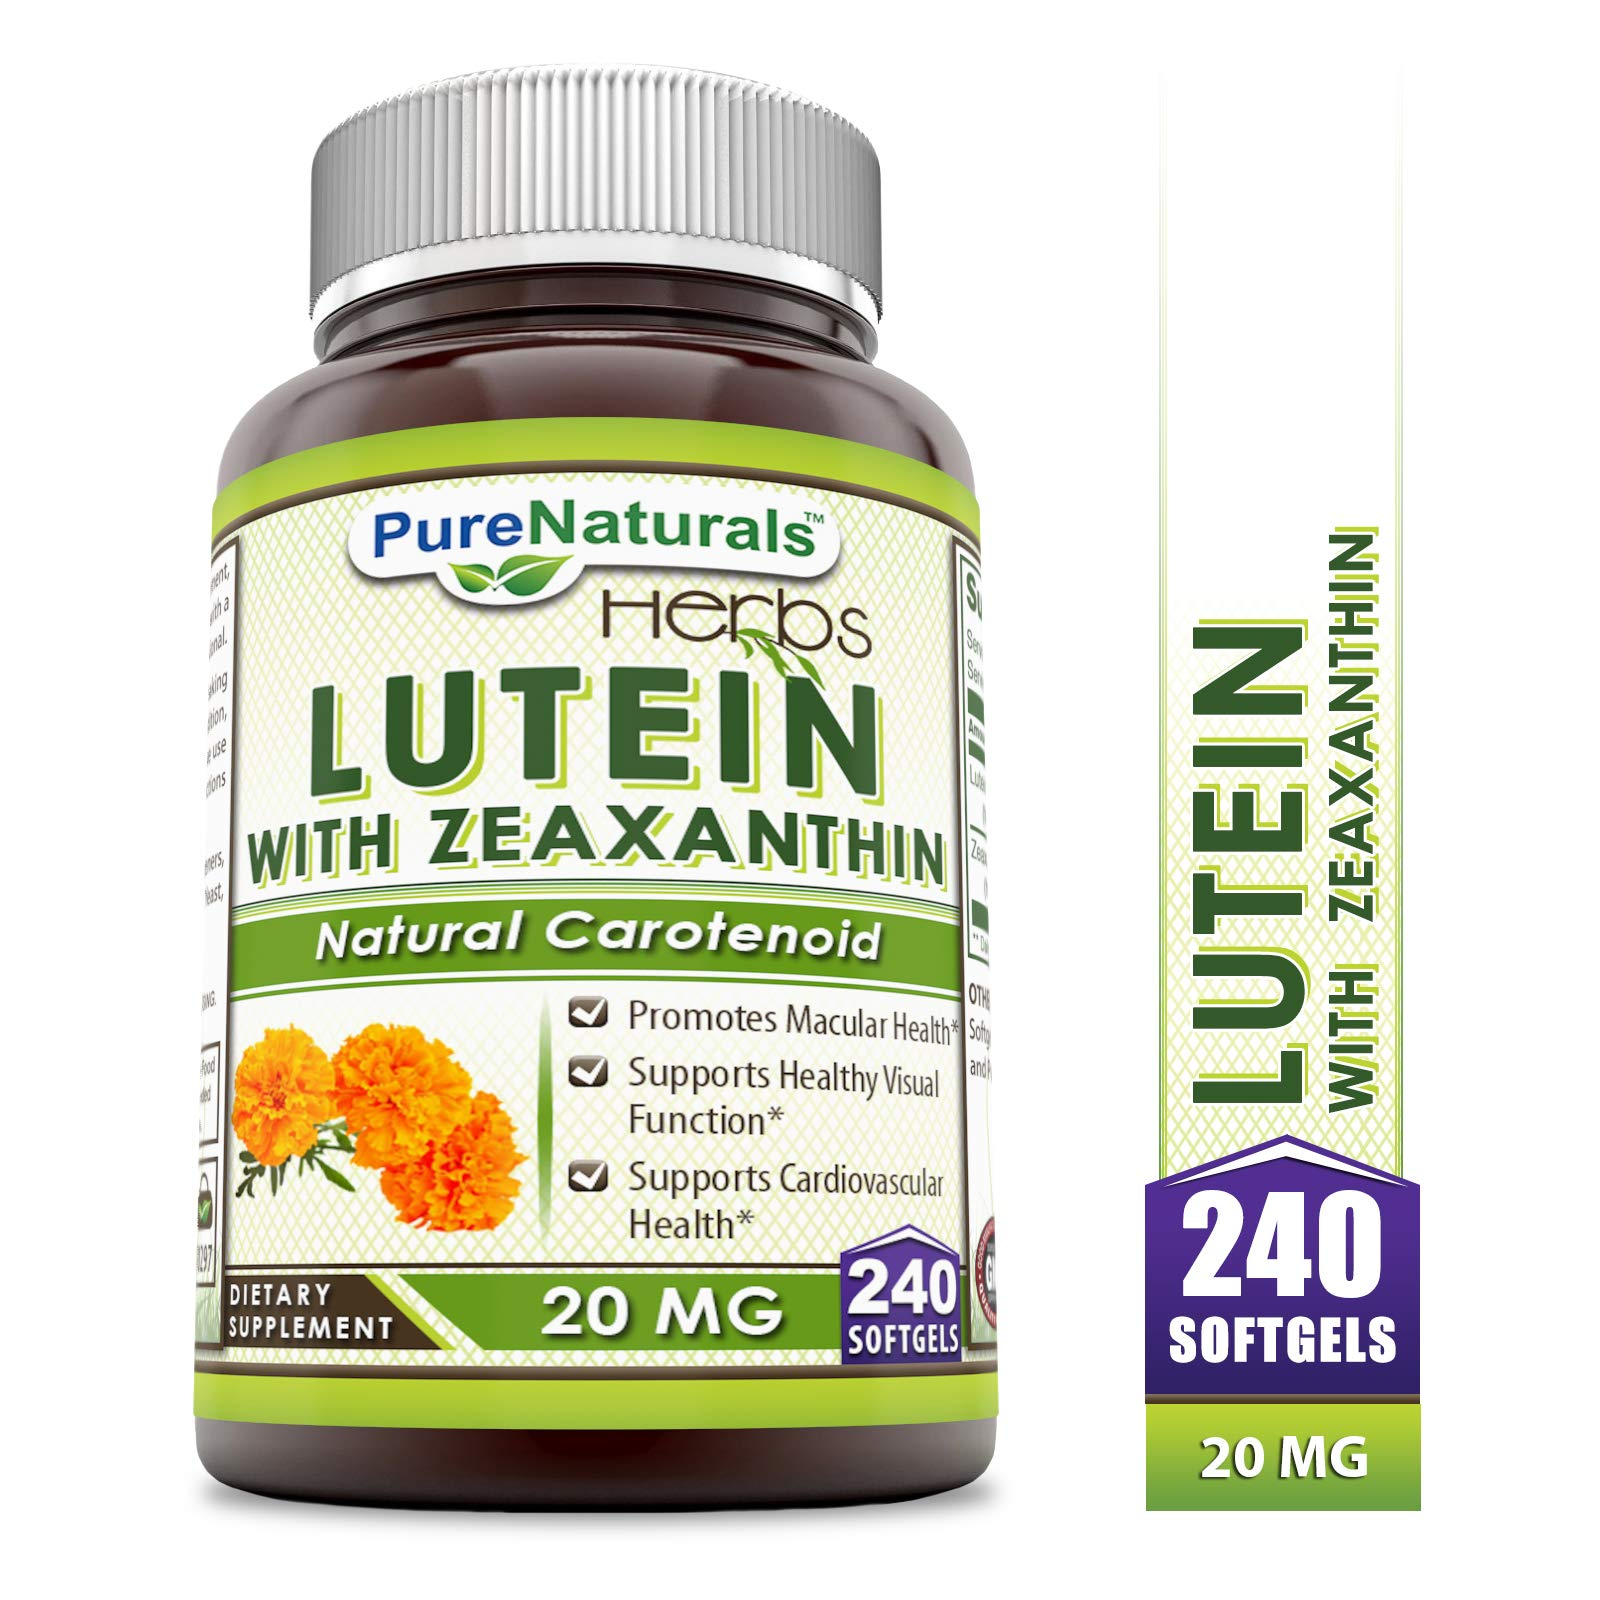 Pure Naturals Lutein, 20 mg, 240 Softgels by Pure Naturals